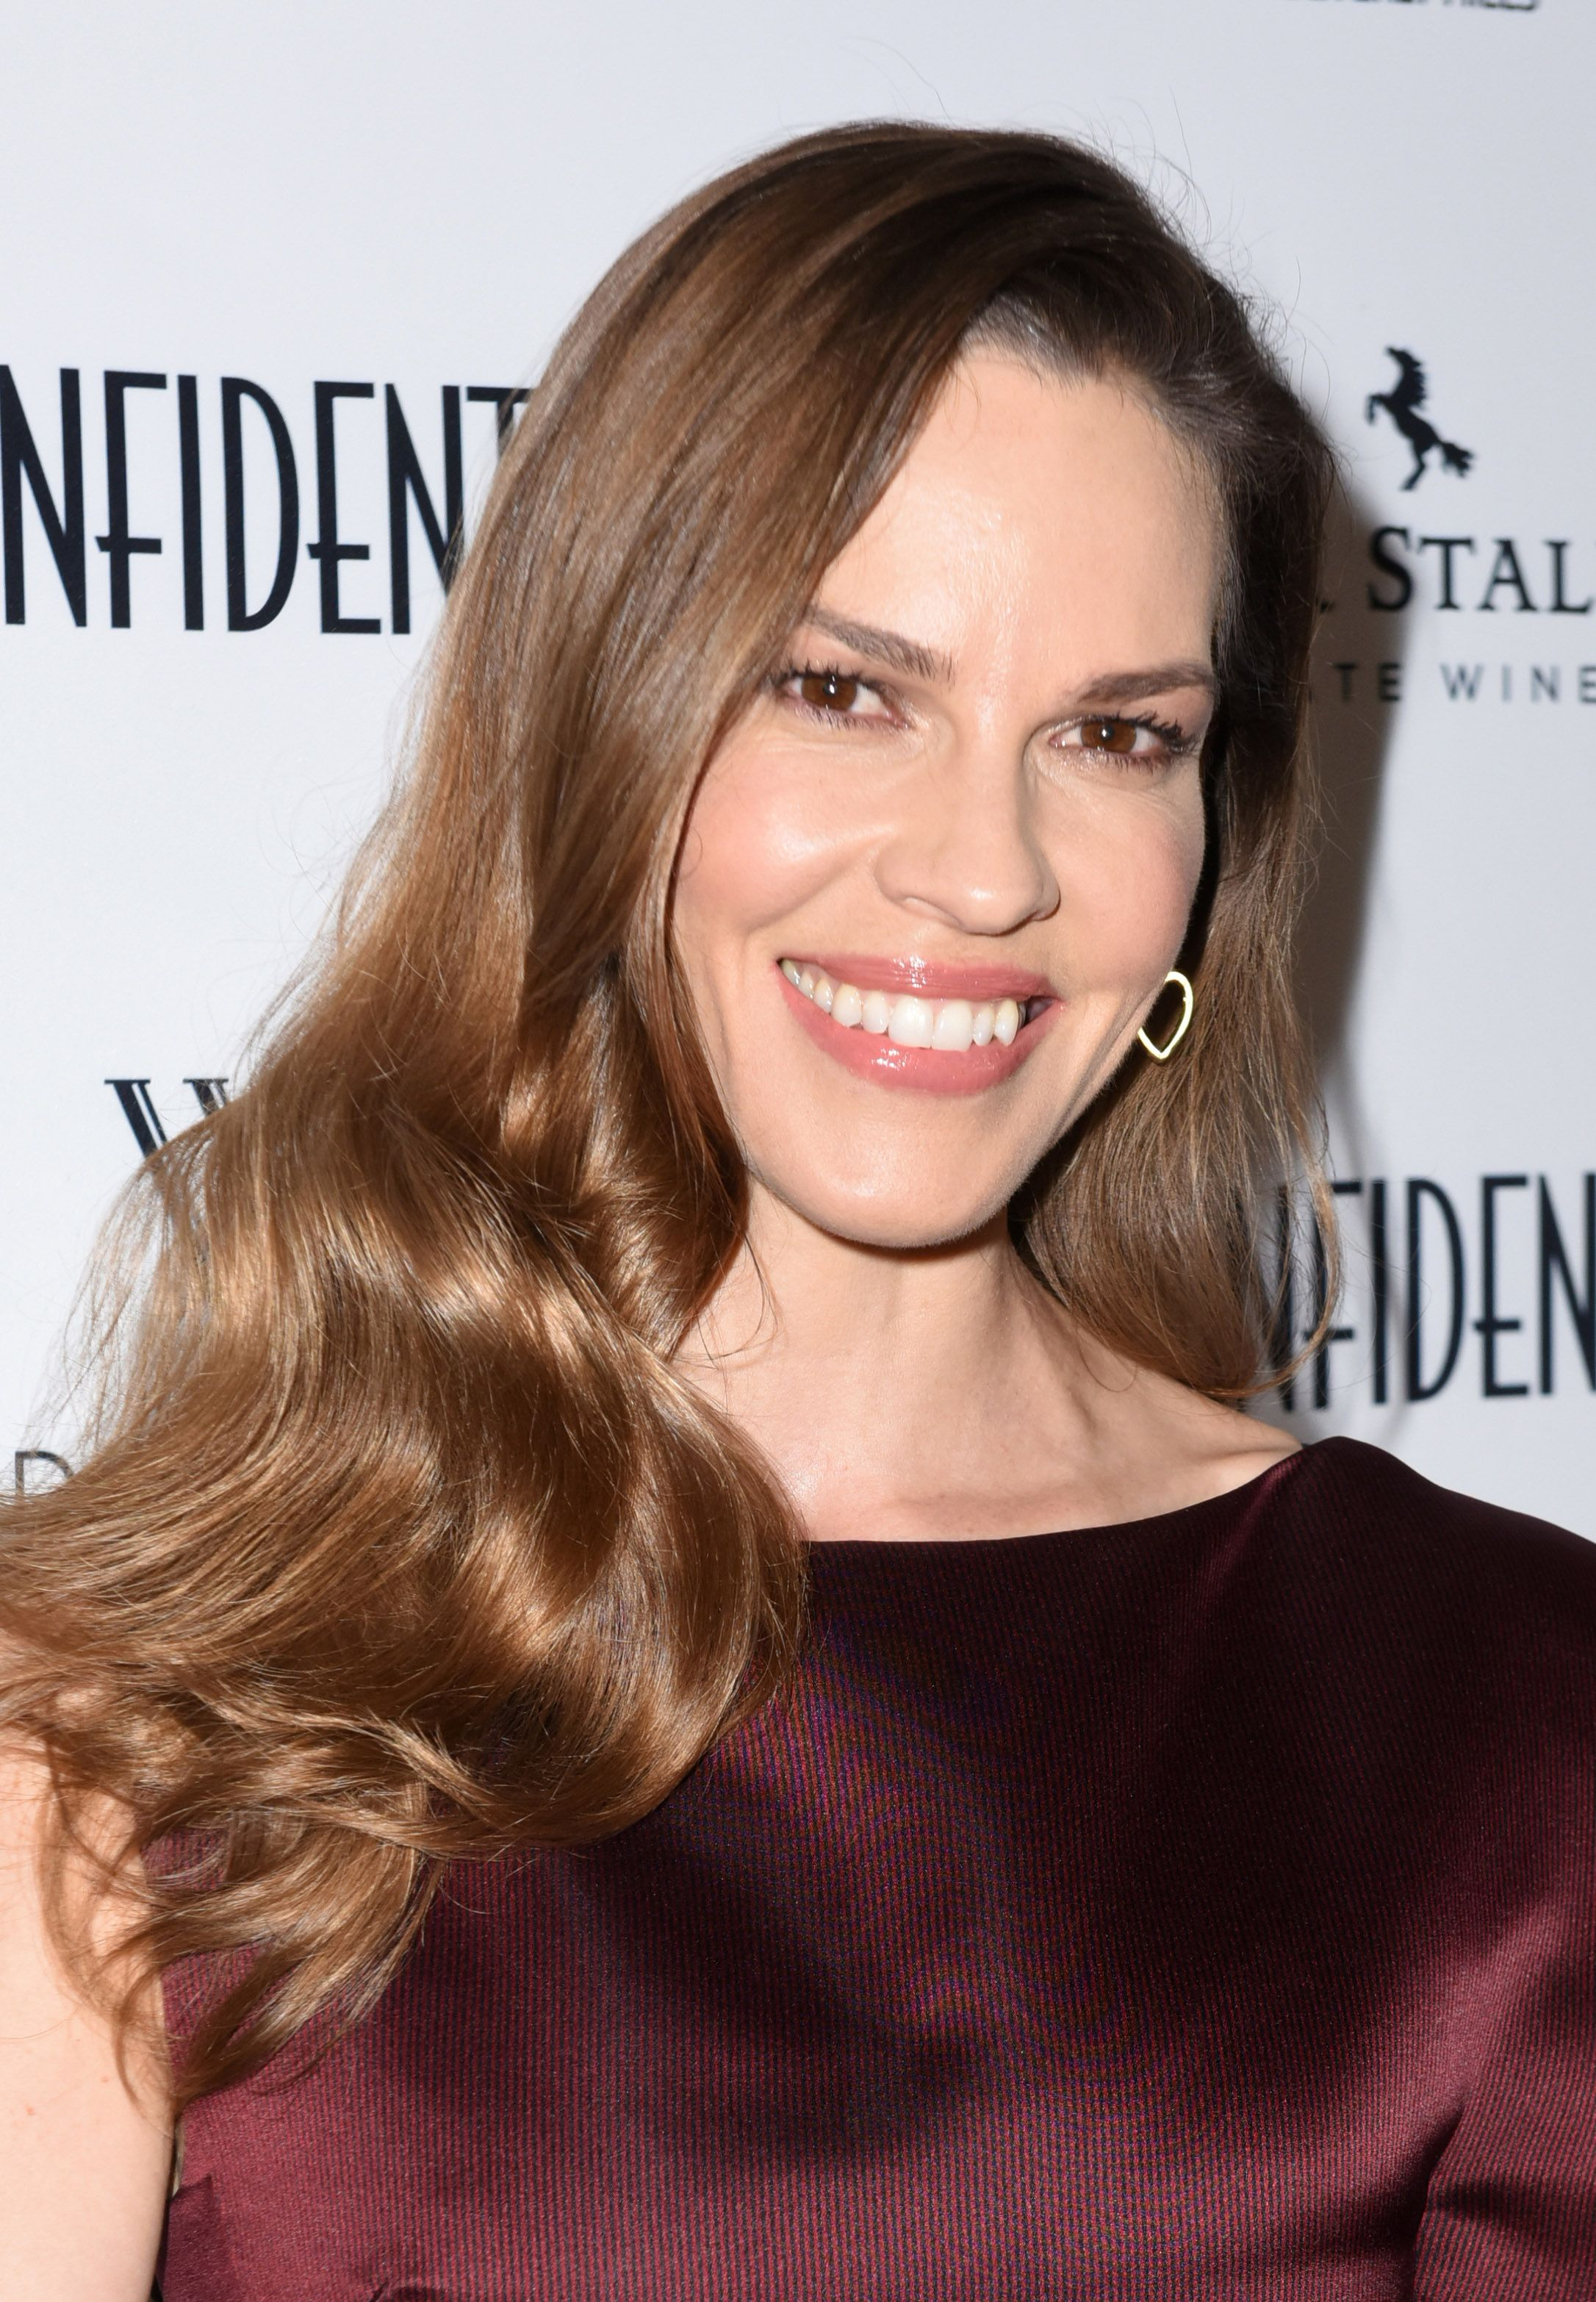 Hilary Swank at Waldorf Astoria Beverly Hills on April 12, 2018 in Beverly Hills, California. | Photo: Getty Images